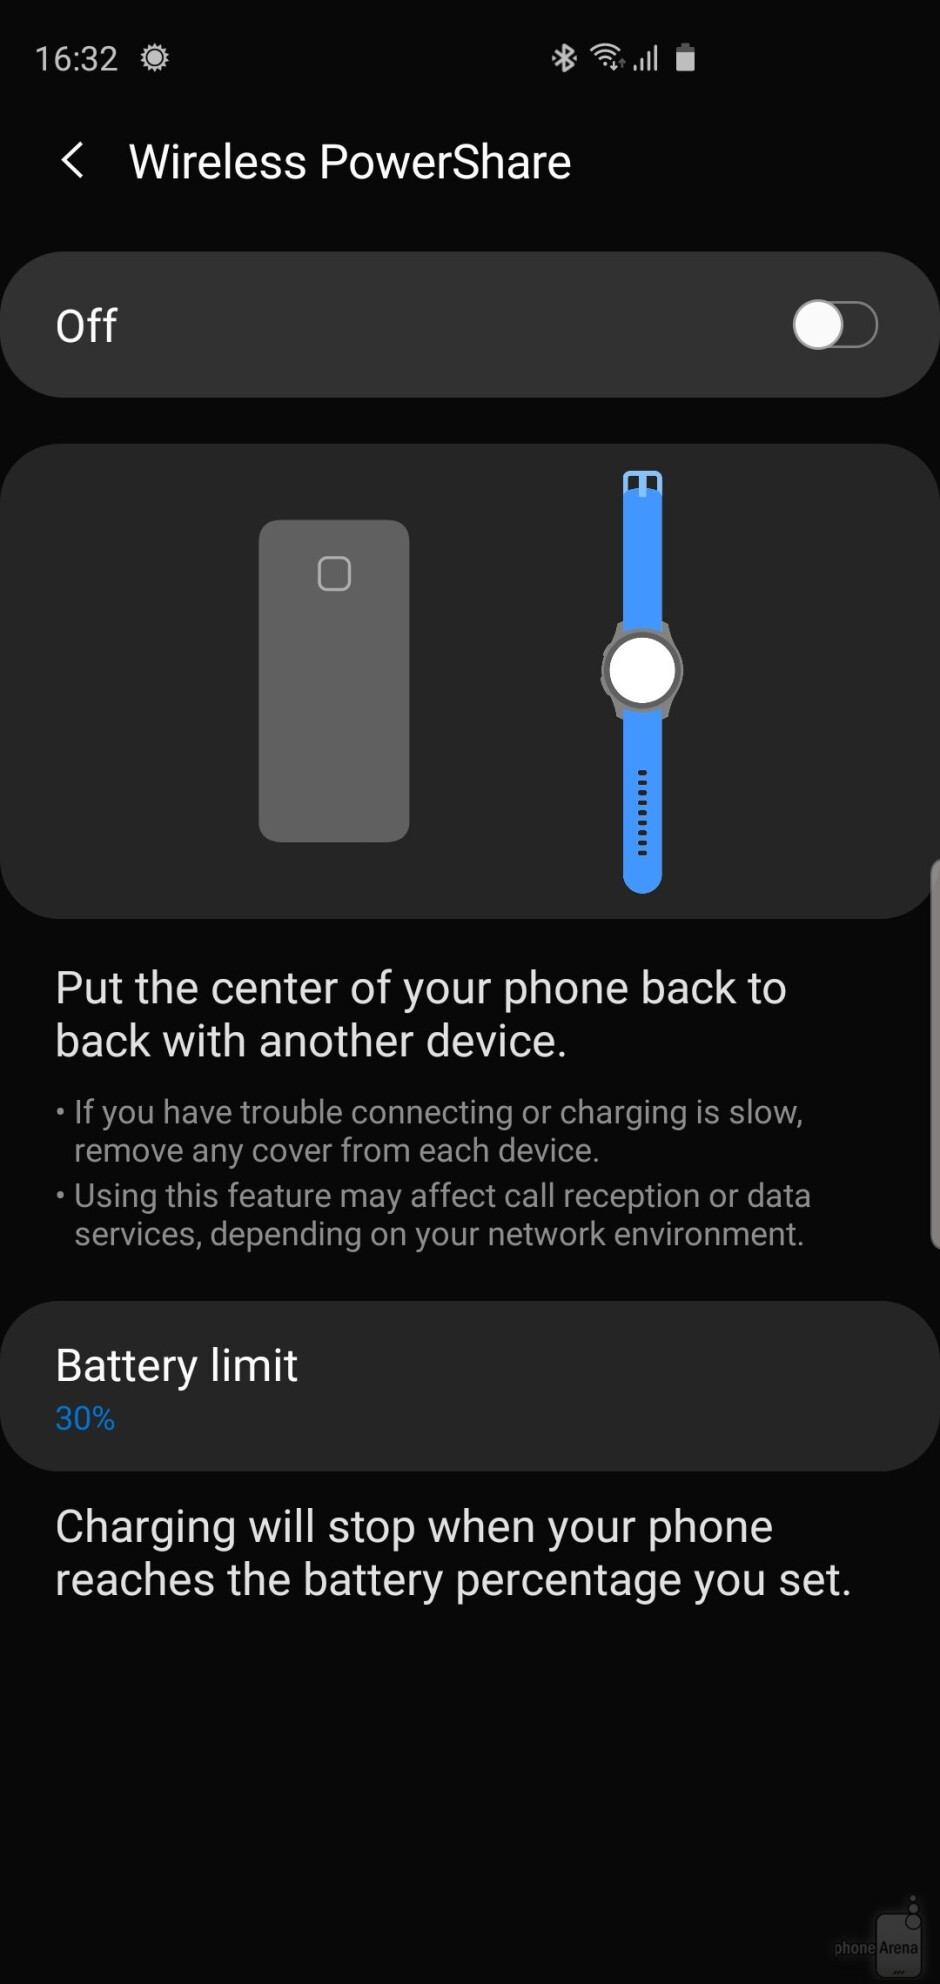 Wireless Powershare in One UI 2.0 - Android 10 with One UI 2.0 on the Samsung Galaxy S10+: Hands-on with all the new features